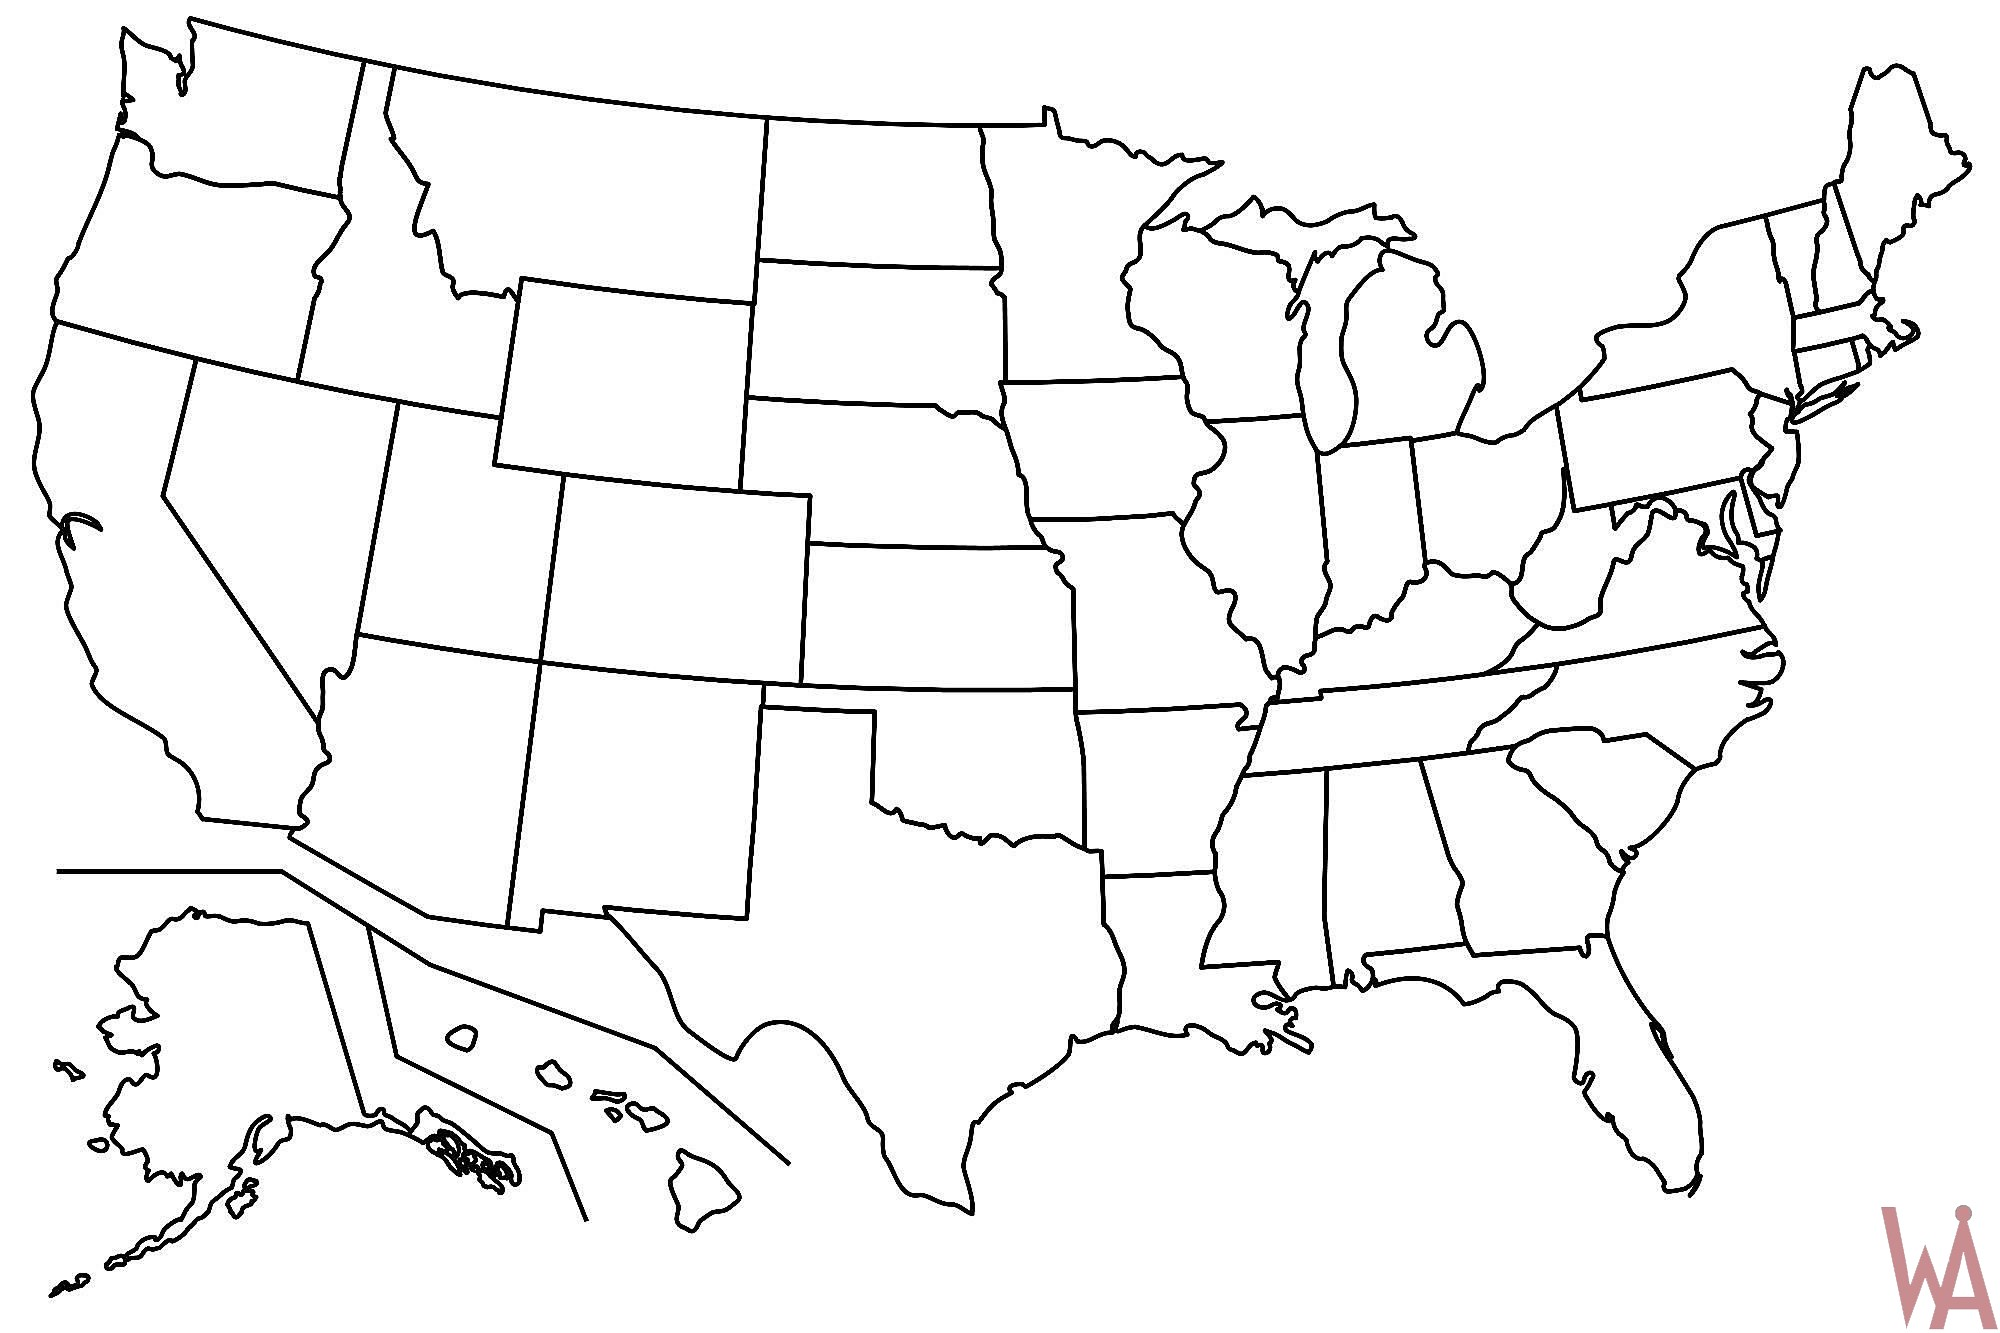 Outline Maps Of The USA | WhatsAnswer